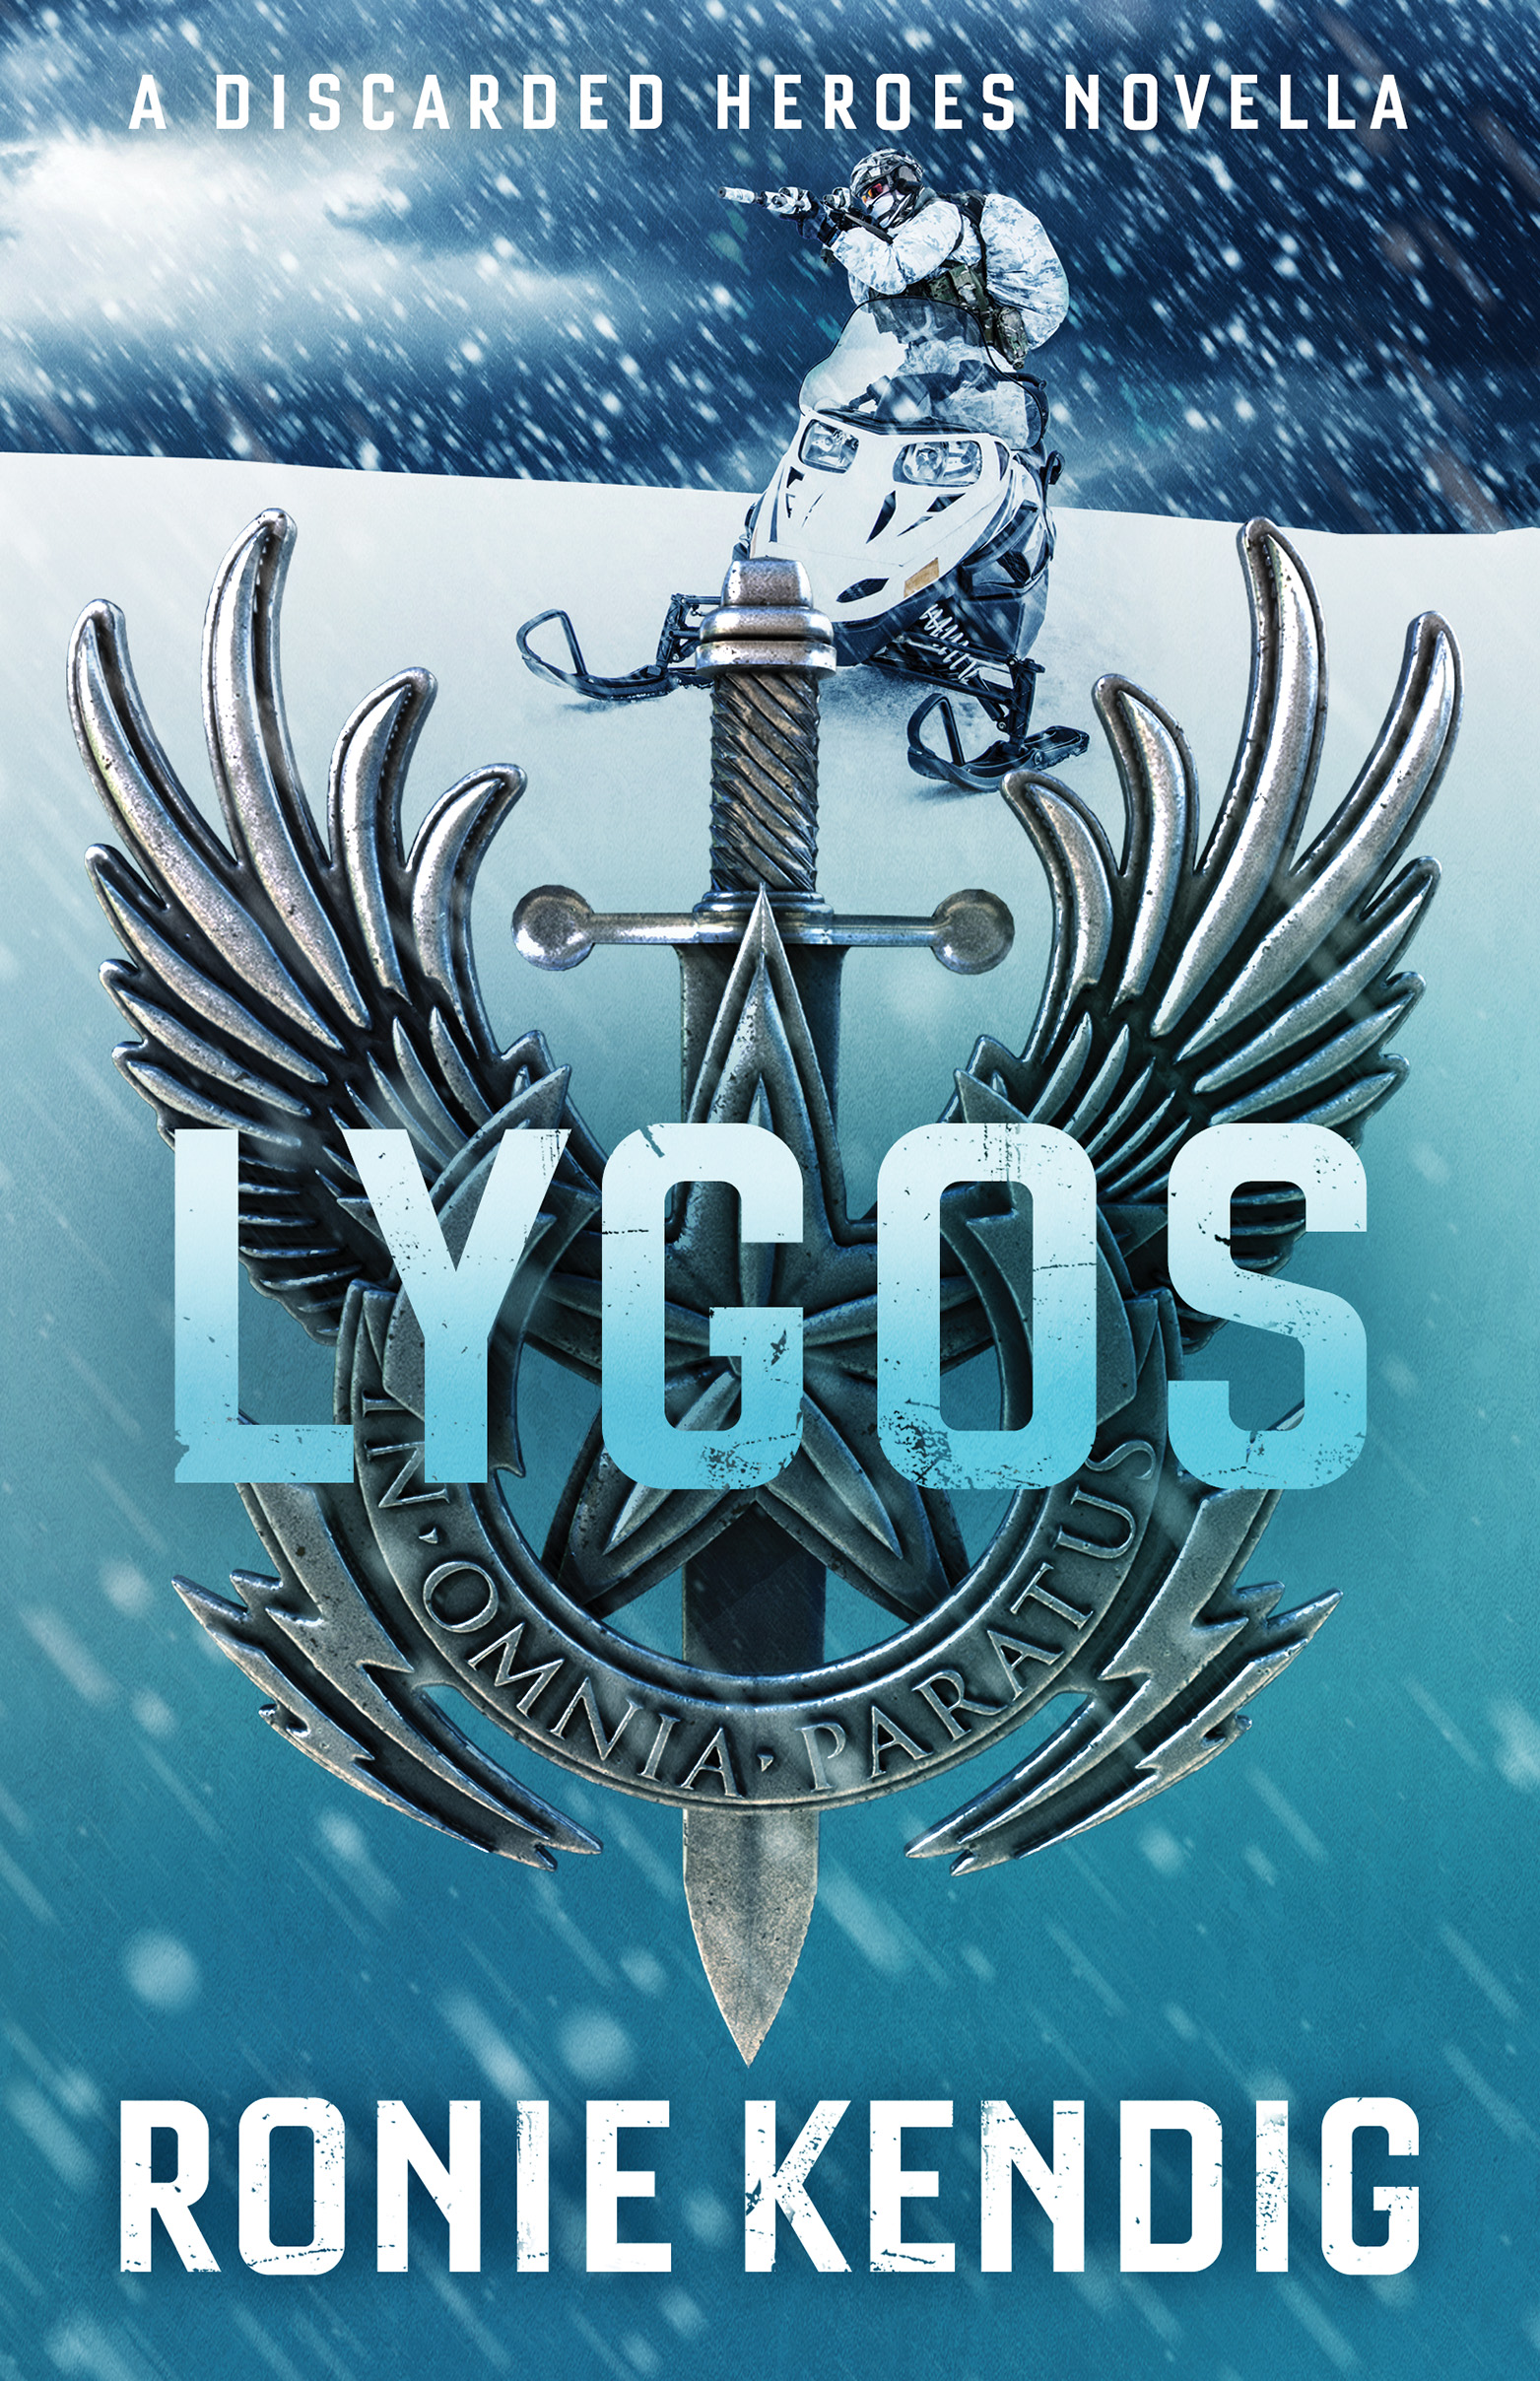 Lygos: A Discarded Heroes Novella by Ronie Kendig (with giveaways)